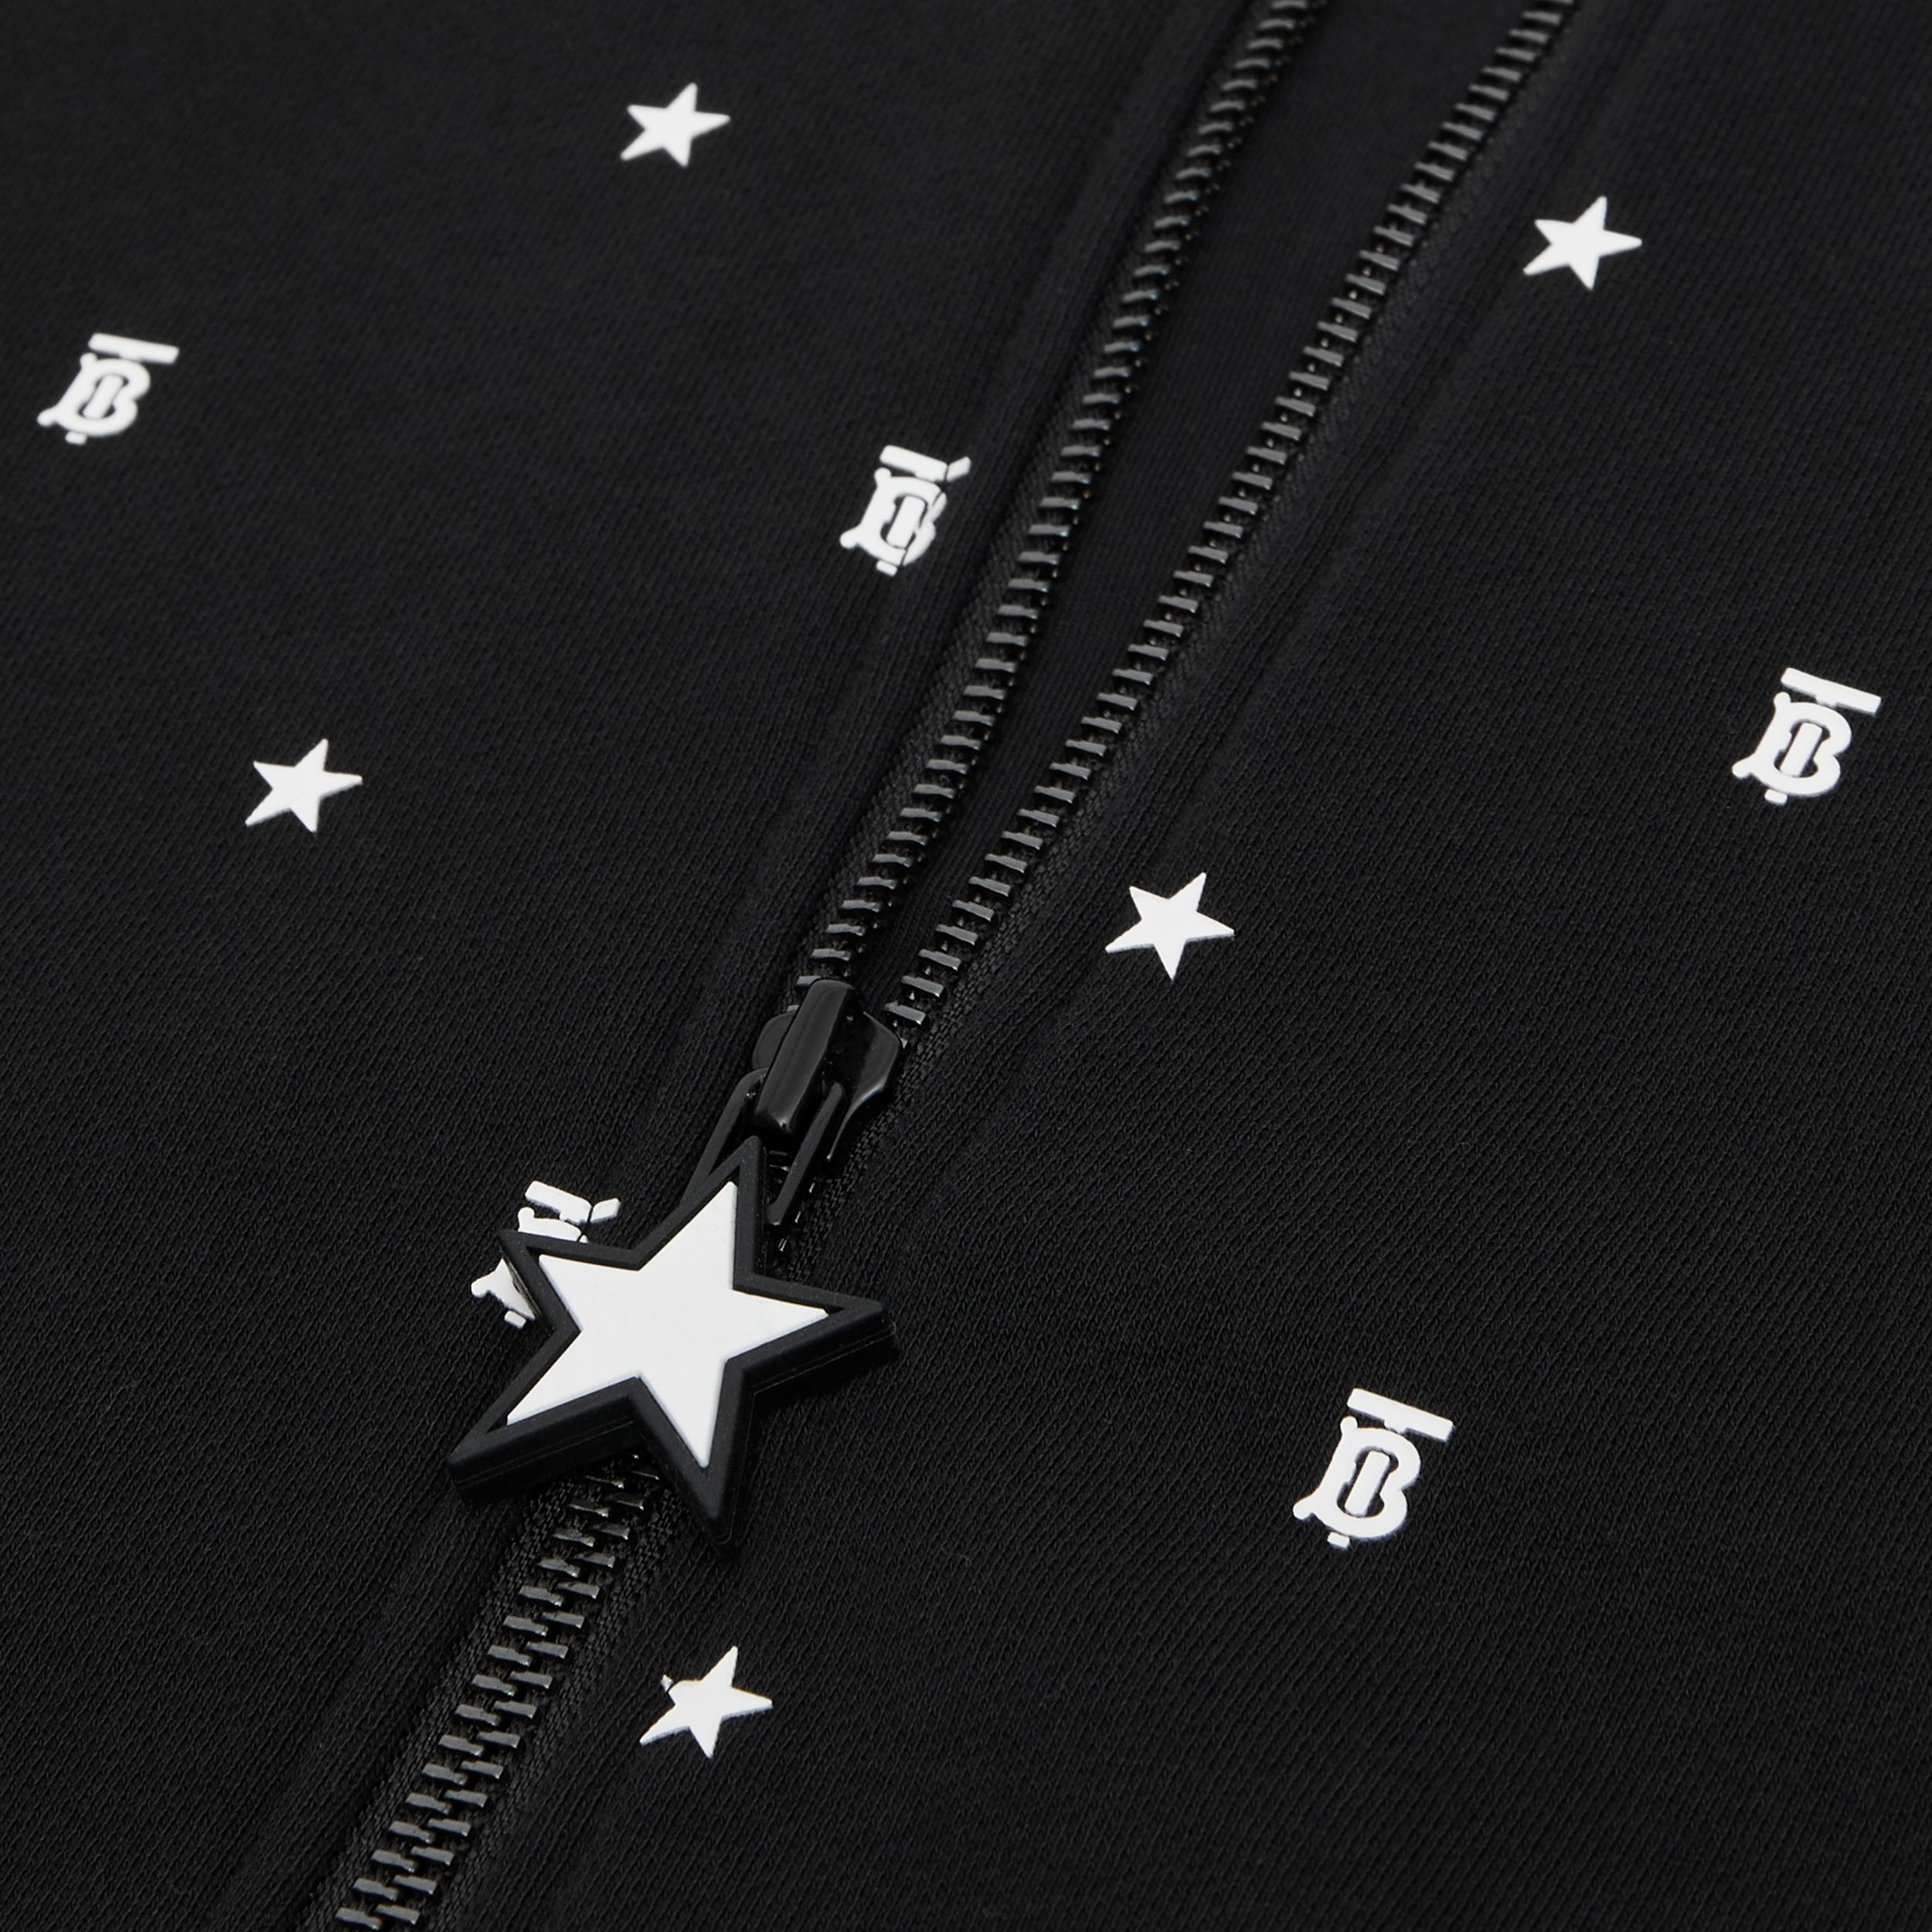 Star and Monogram Motif Cotton Hooded Top in Black | Burberry - 2